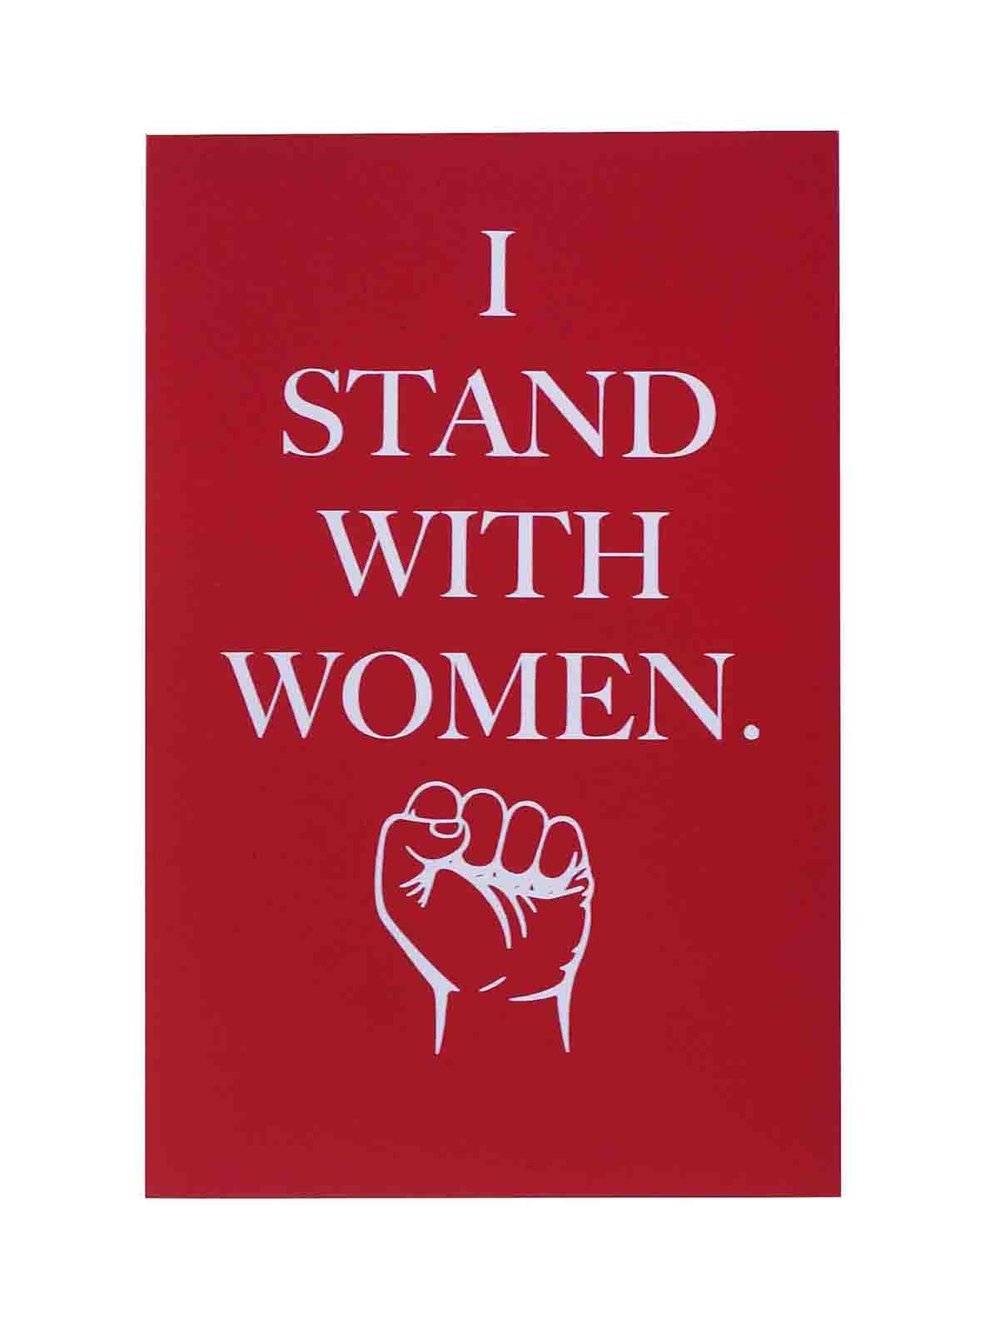 Ape_Bleakney_'I Stand With Women' Women's March Poster on Construction Electric Red, 12.5''x19''.jpg